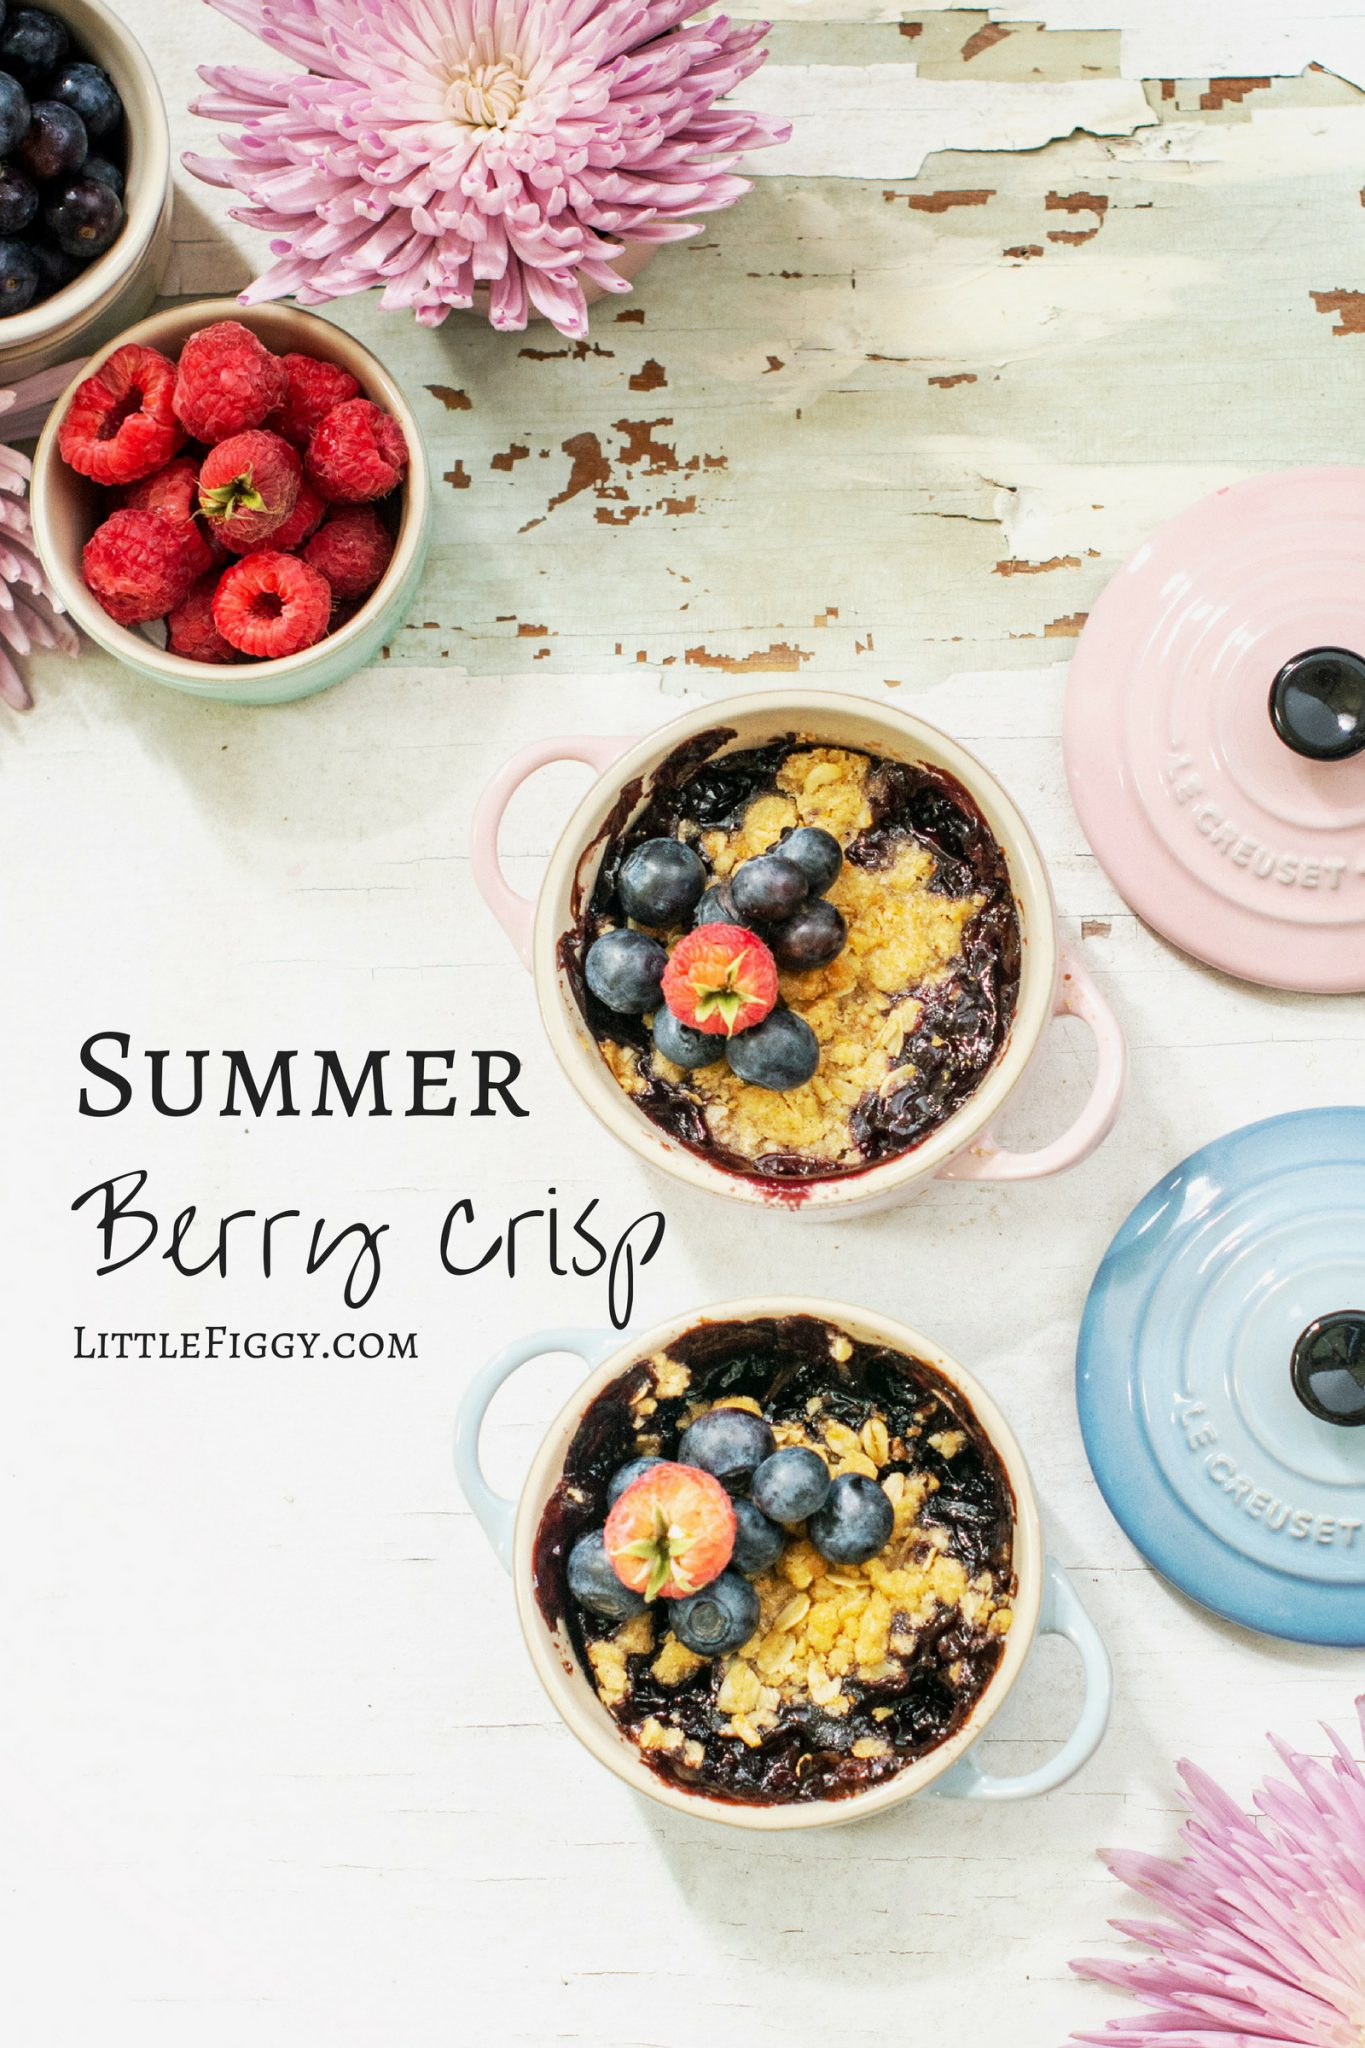 This Summer Berry Crisp dessert recipe, also known as a mixed berry cobbler, is the perfect way to indulge those gorgeous summer berries. Bake up your blueberries and raspberries into this easy to make, tasty recipe for all to enjoy, then top it off with a nice bit of vanilla ice cream or freshly whipped cream! @LeCreuset #ad #lecreuset #berrycobbler